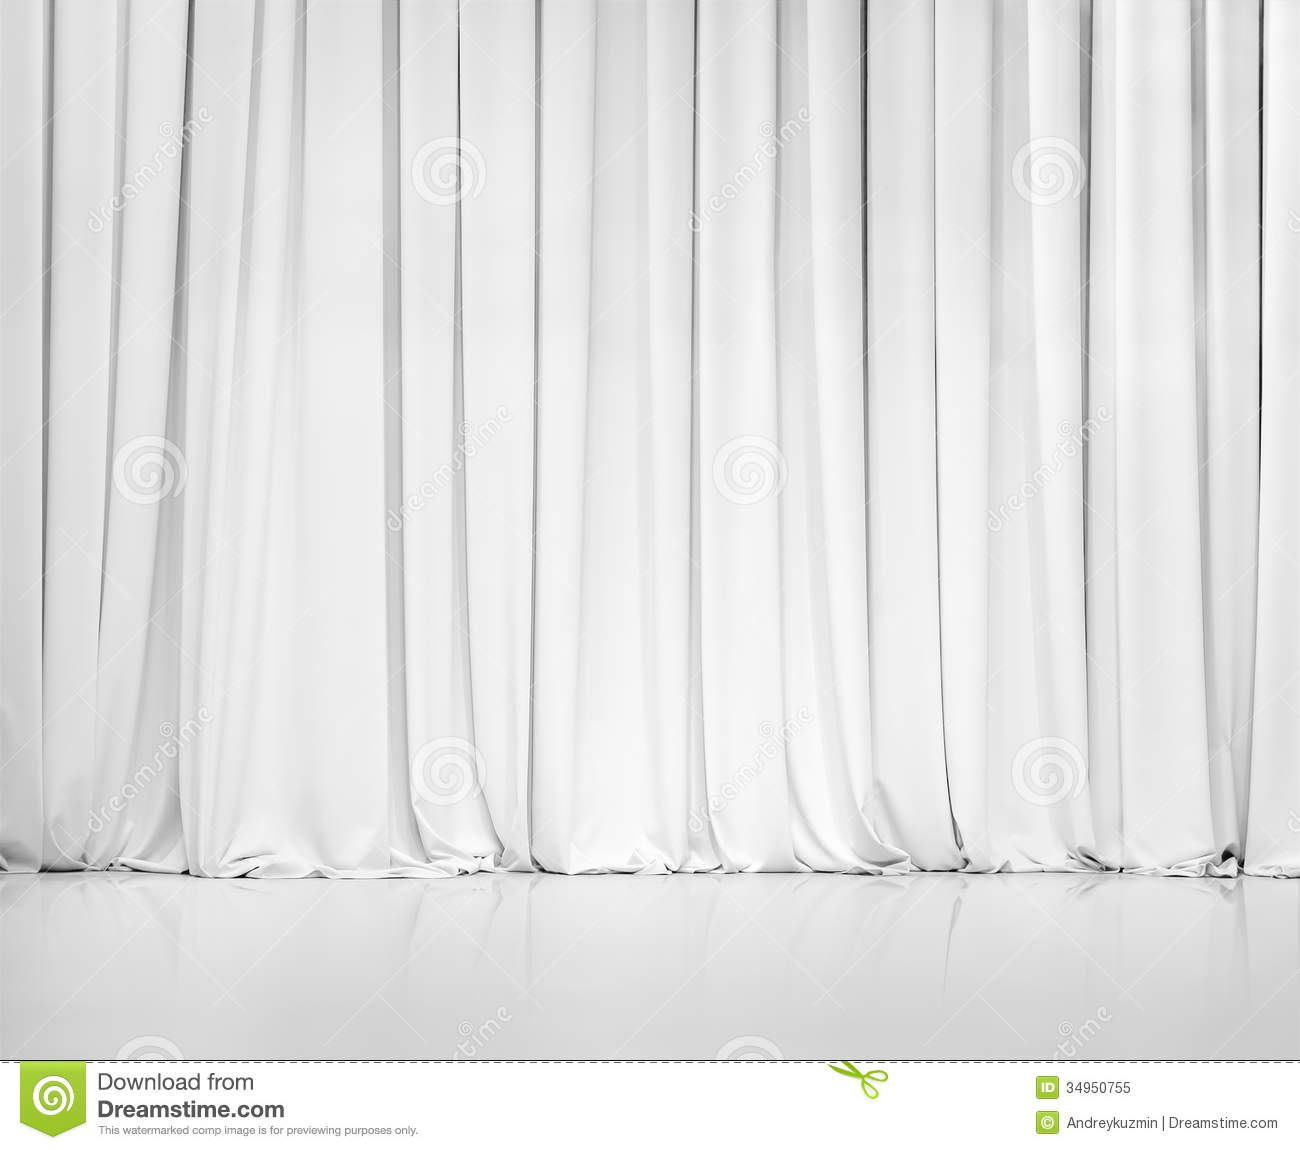 Royalty free stock photo download white curtain or drapes background